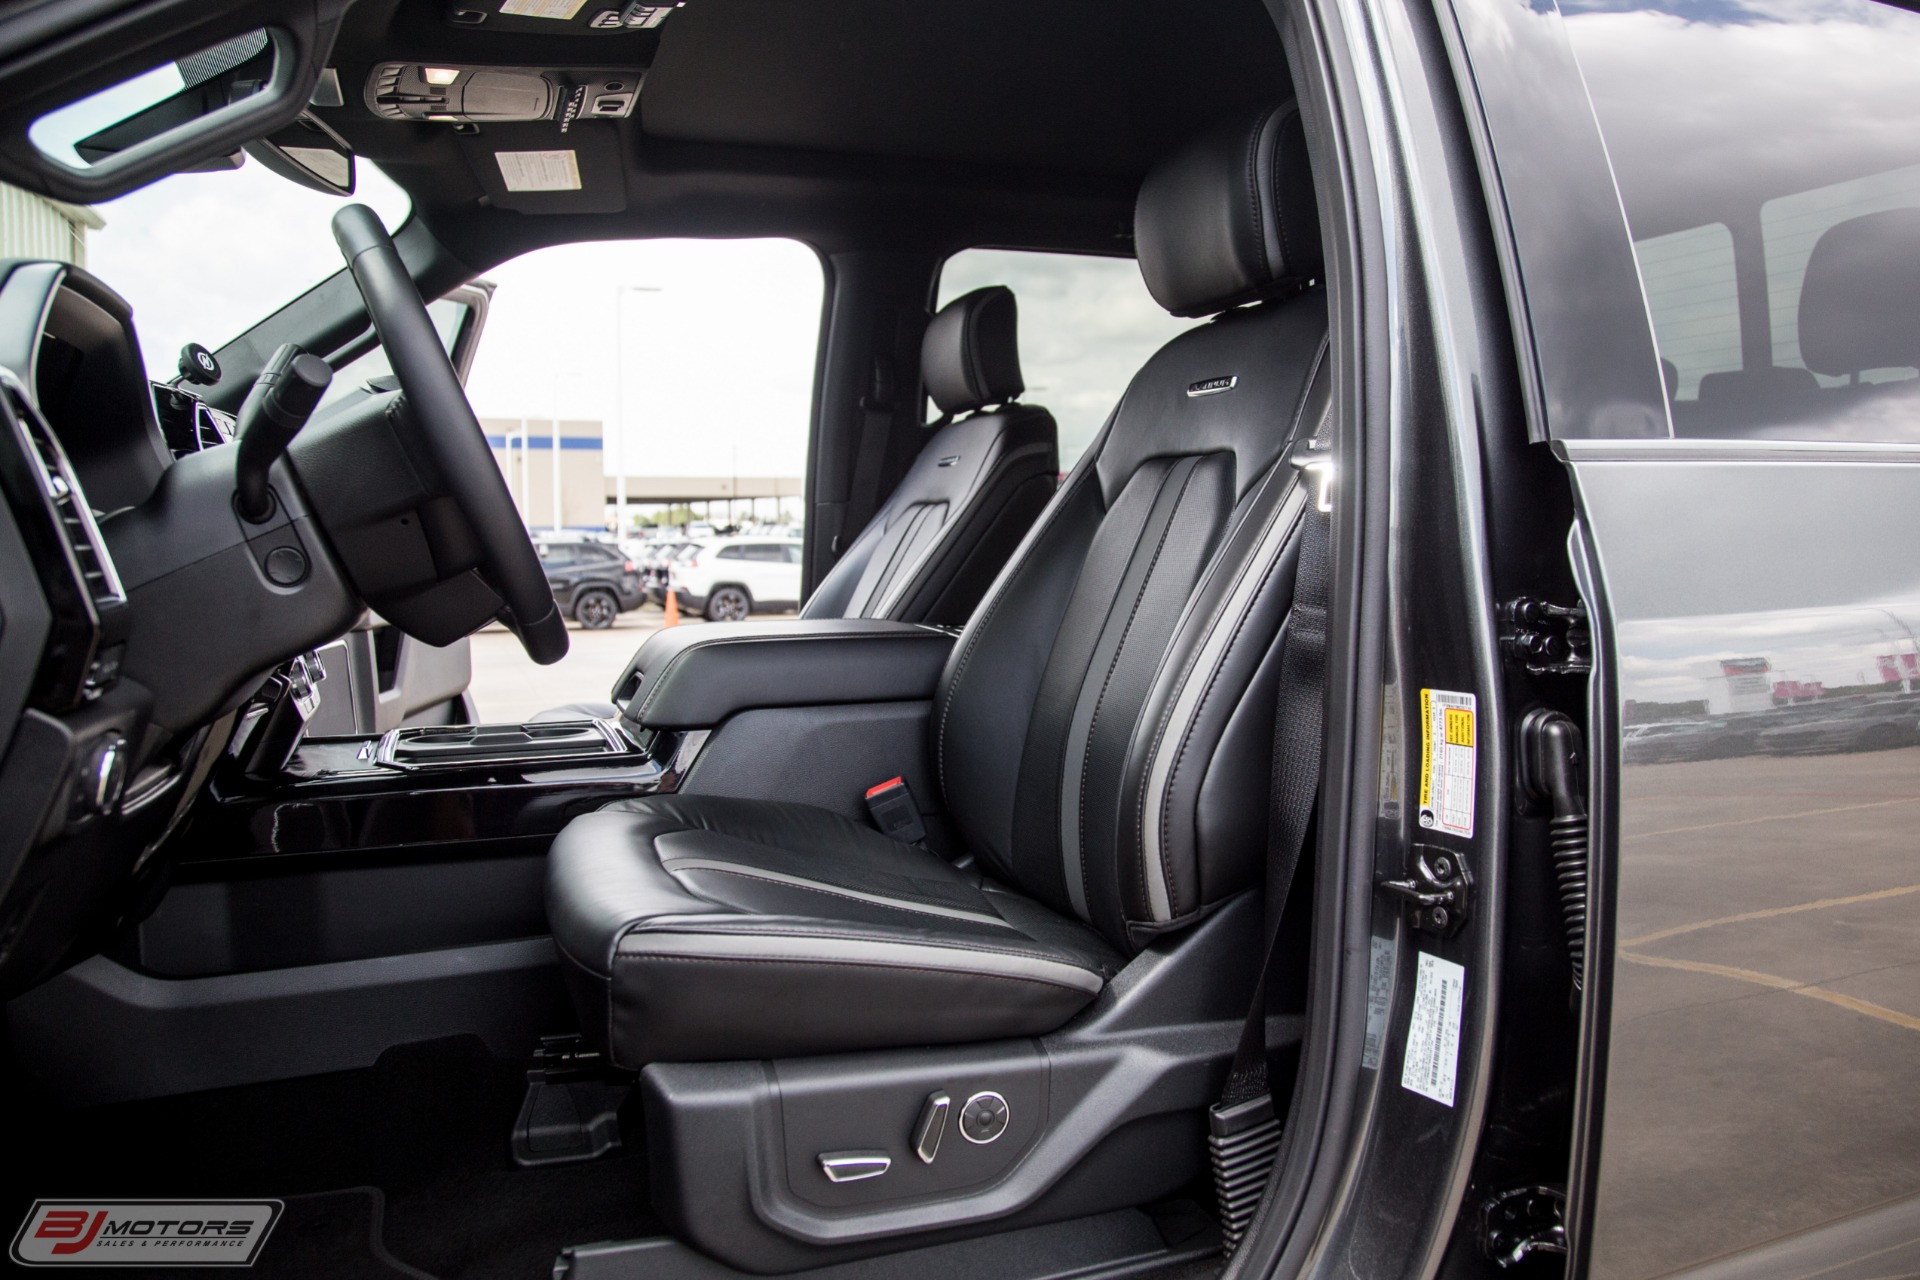 Used-2019-Ford-F-450-Super-Duty-Platinum